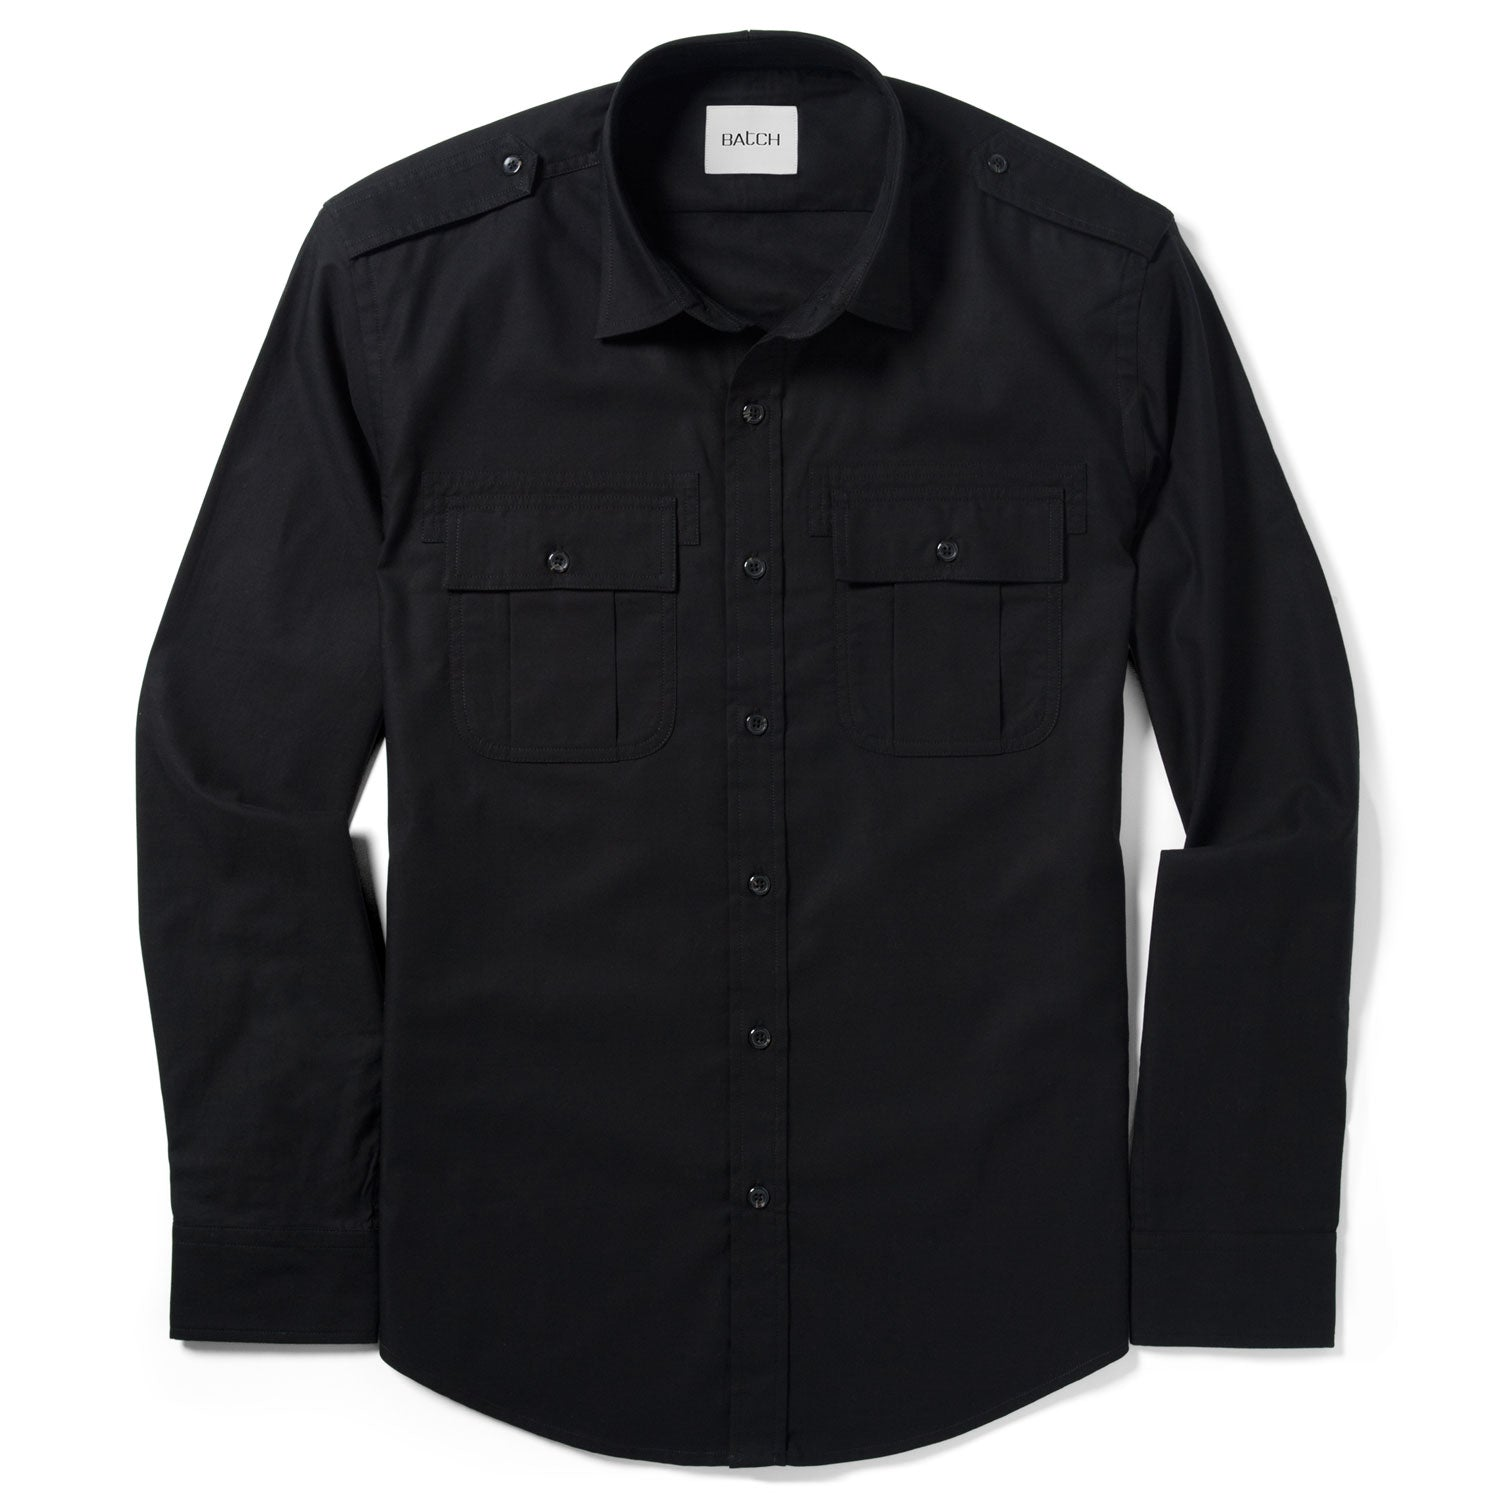 Convoy Utility Shirt – Pure Black Mercerized Cotton